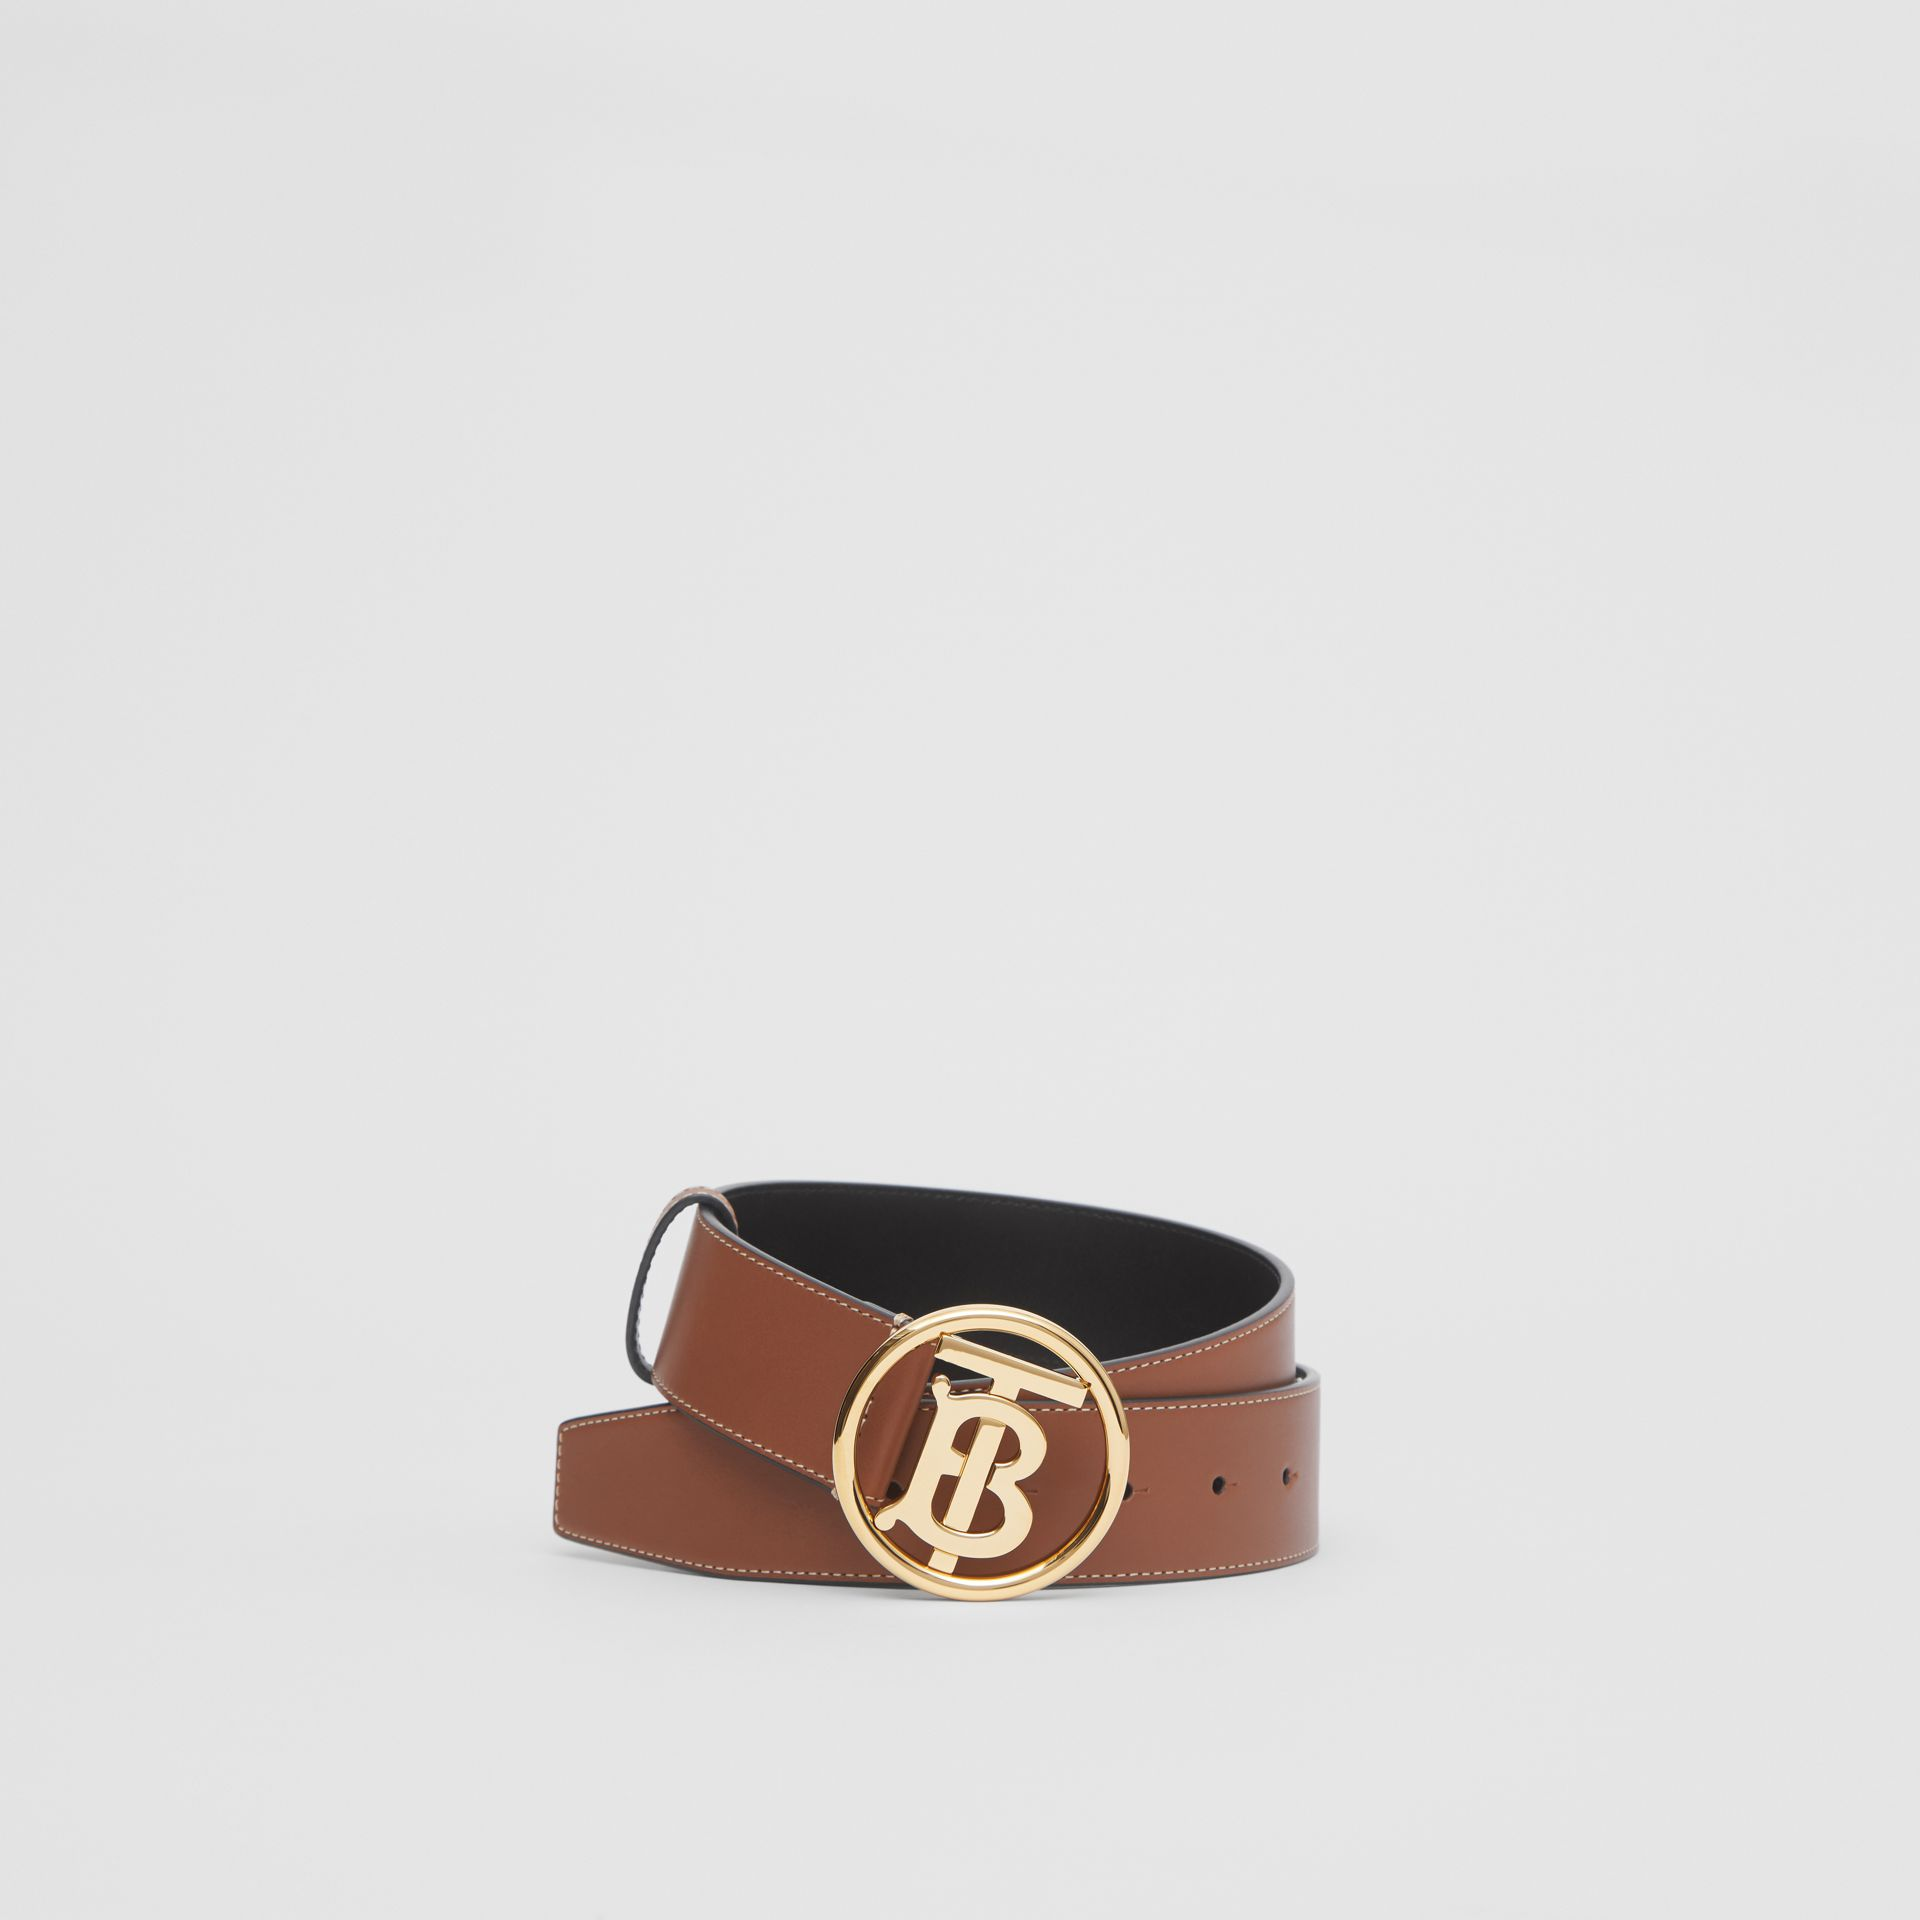 Monogram Motif Topstitched Leather Belt in Tan - Men | Burberry United Kingdom - gallery image 0